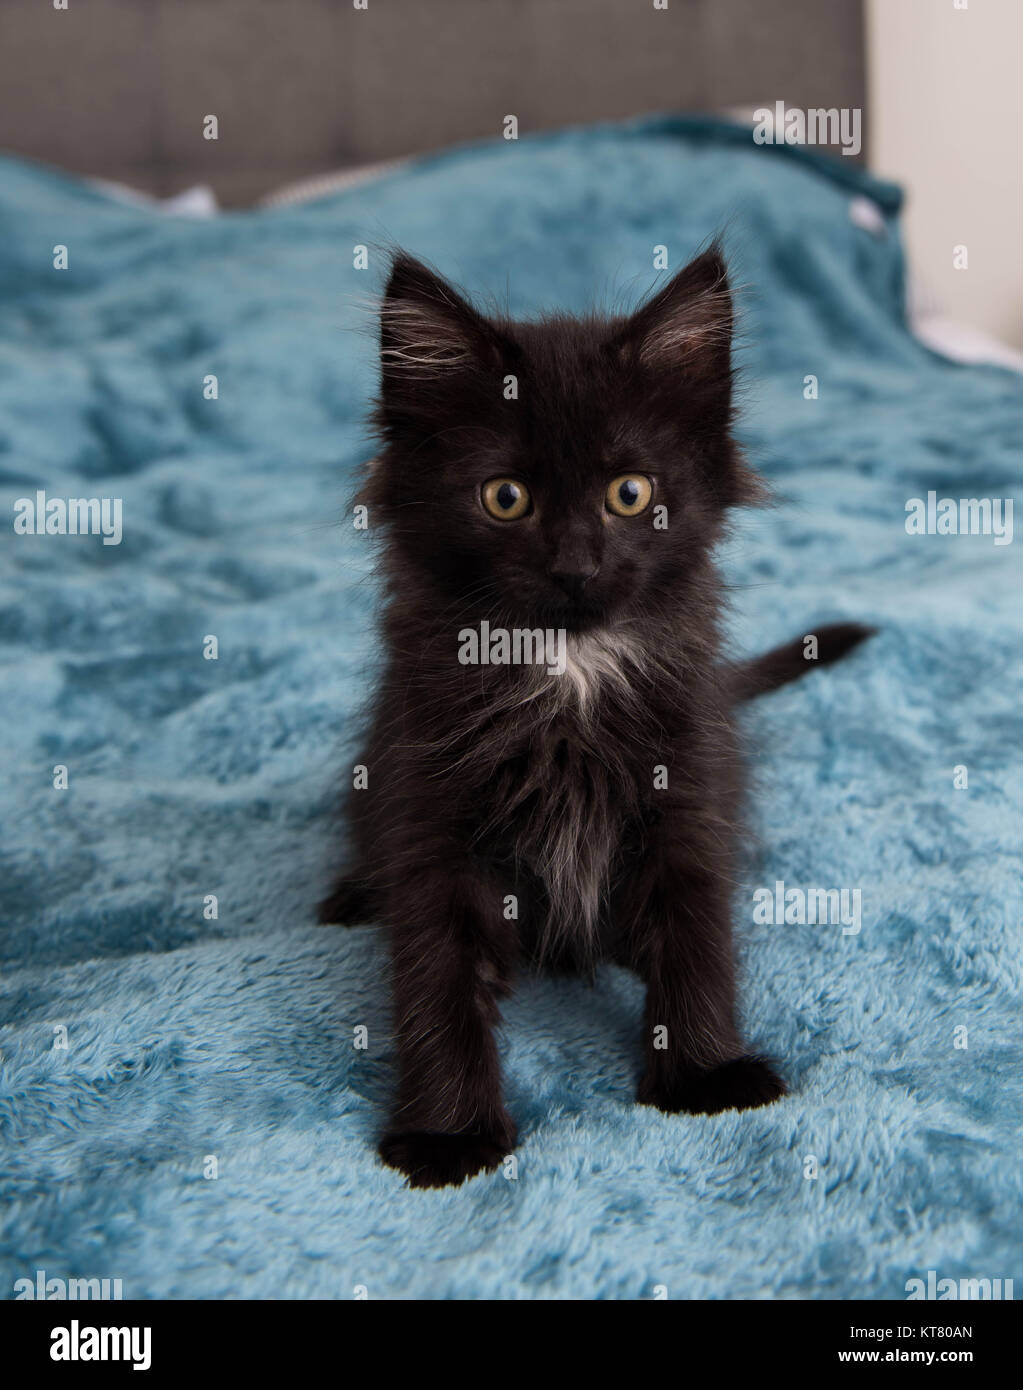 Small Fluffy Black Kitten Playing On Fuzzy Teal Blanket